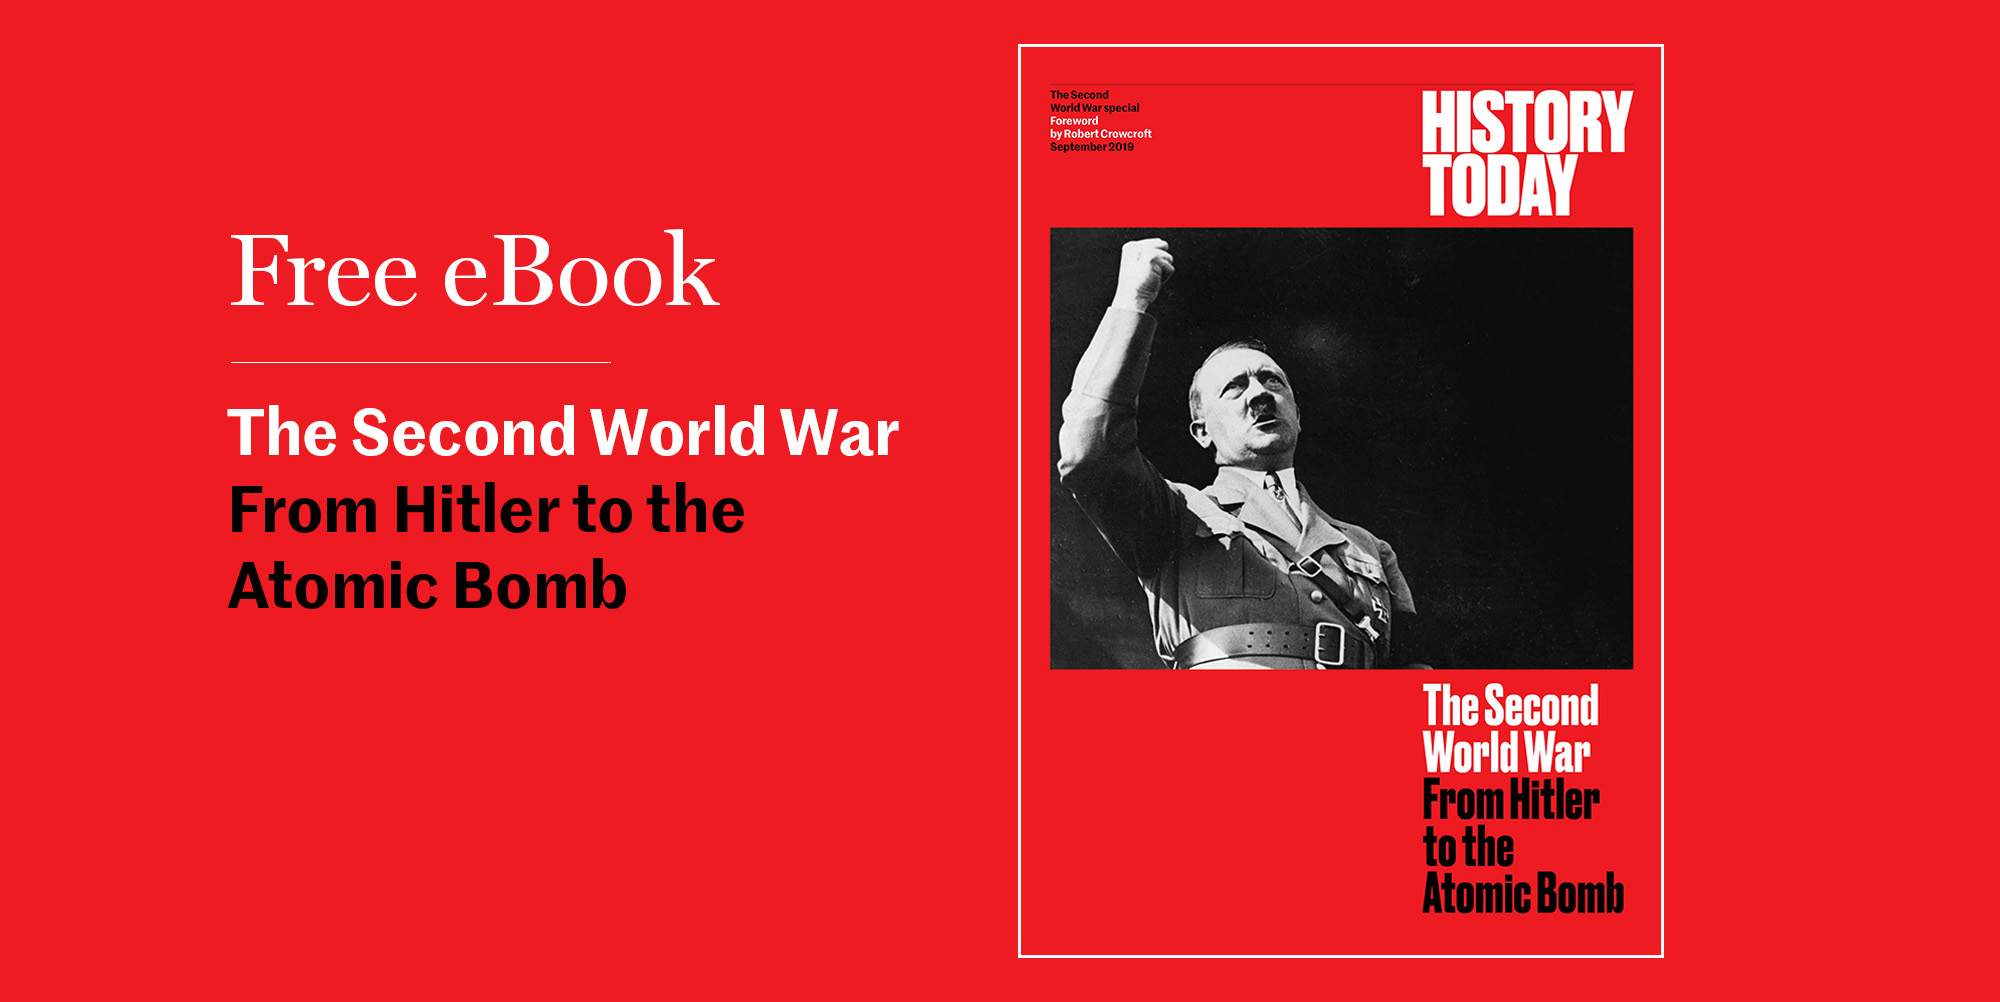 Get our free ebook on the Second World War